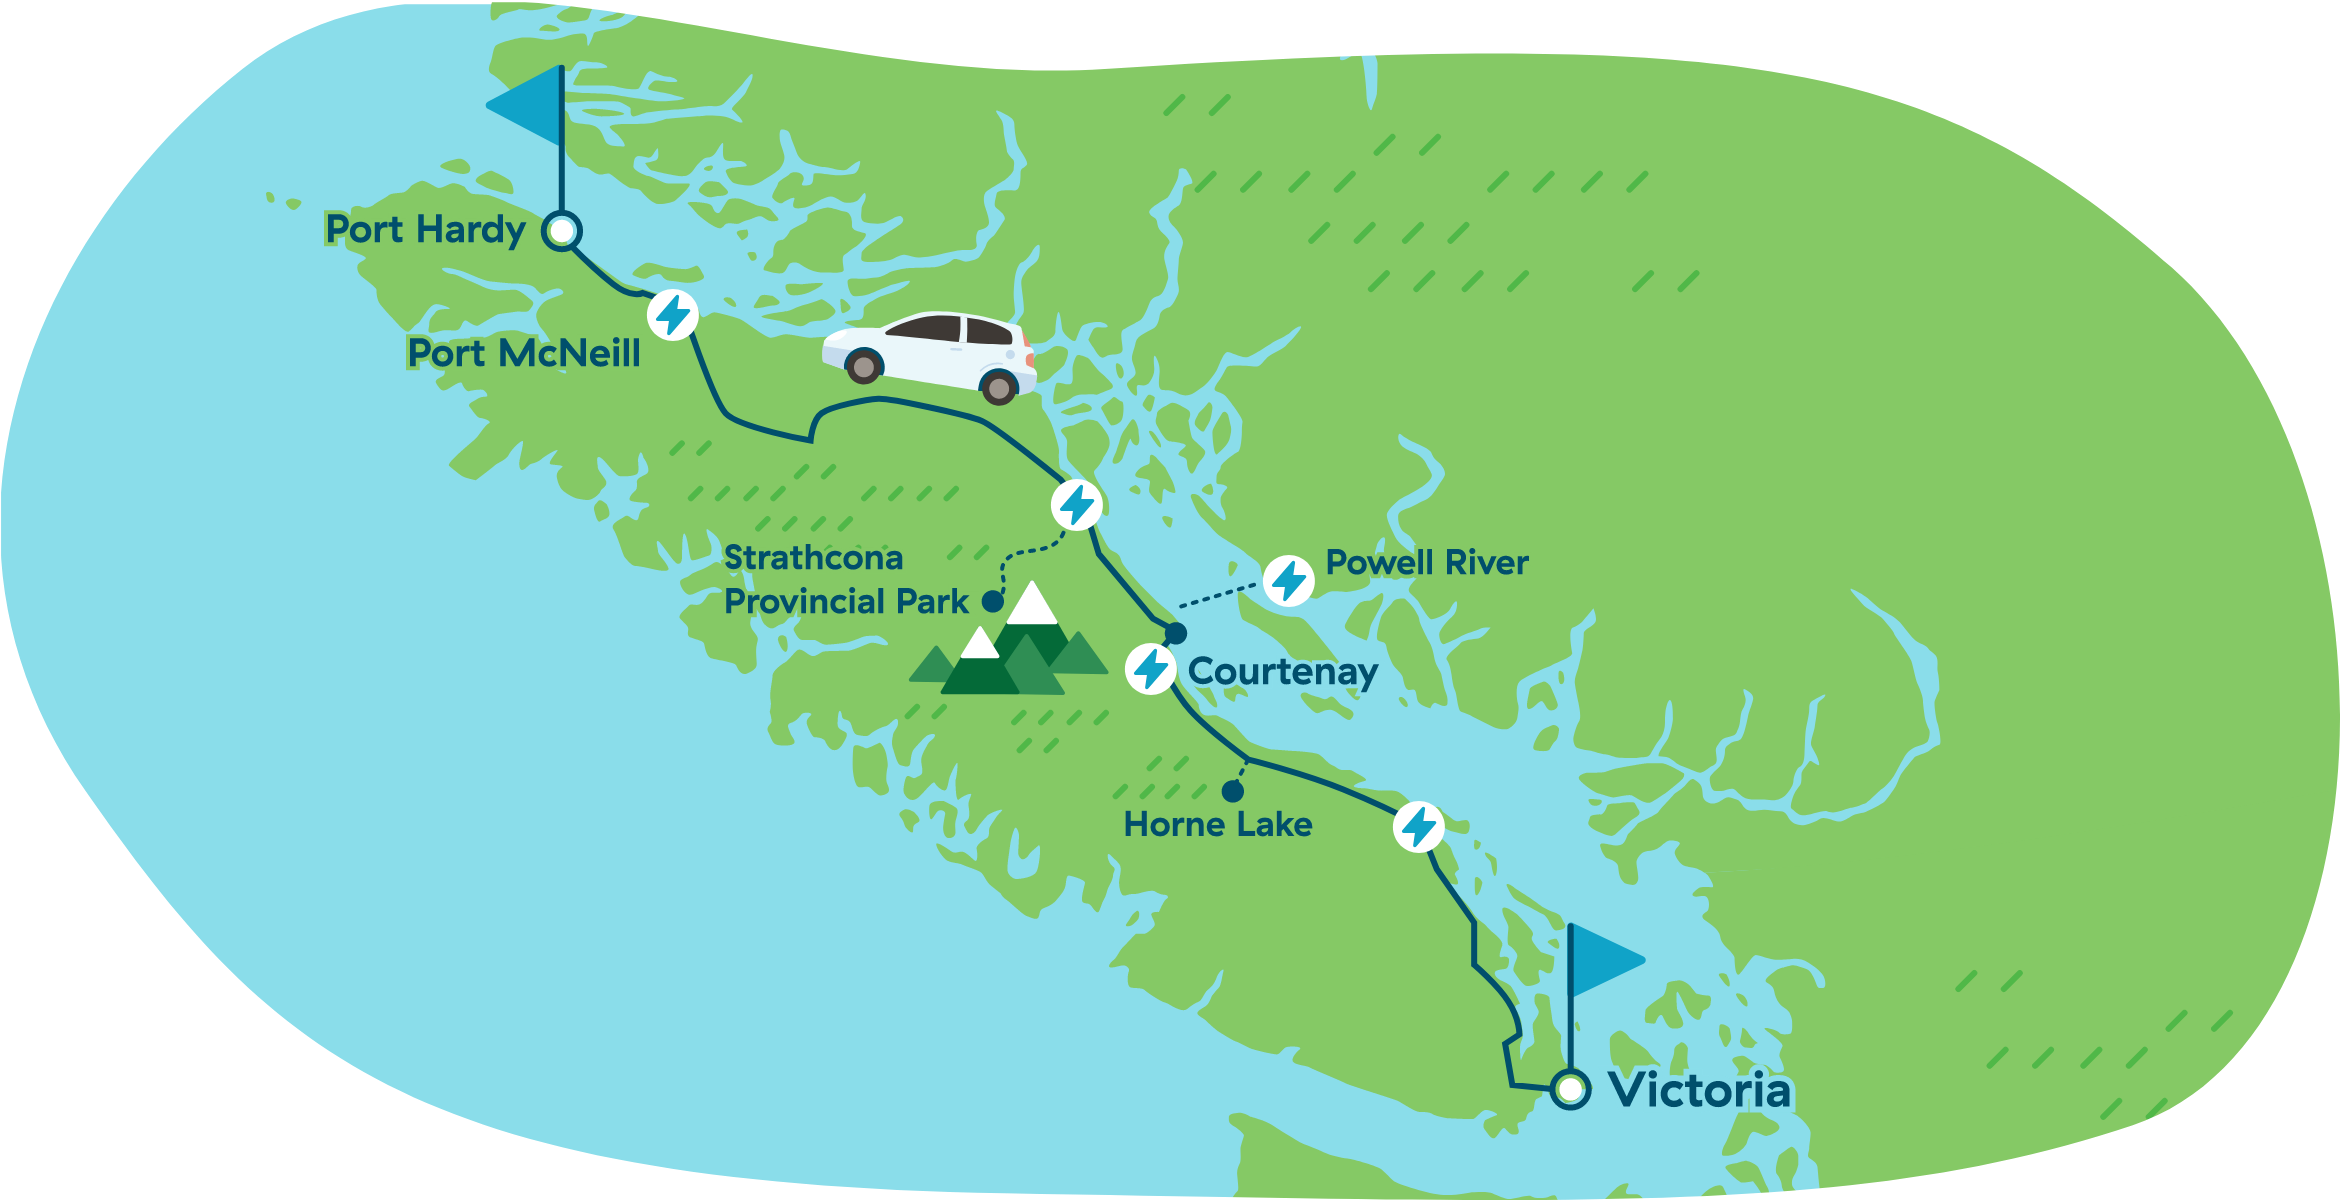 Map of Victoria to Port Hardy road trip